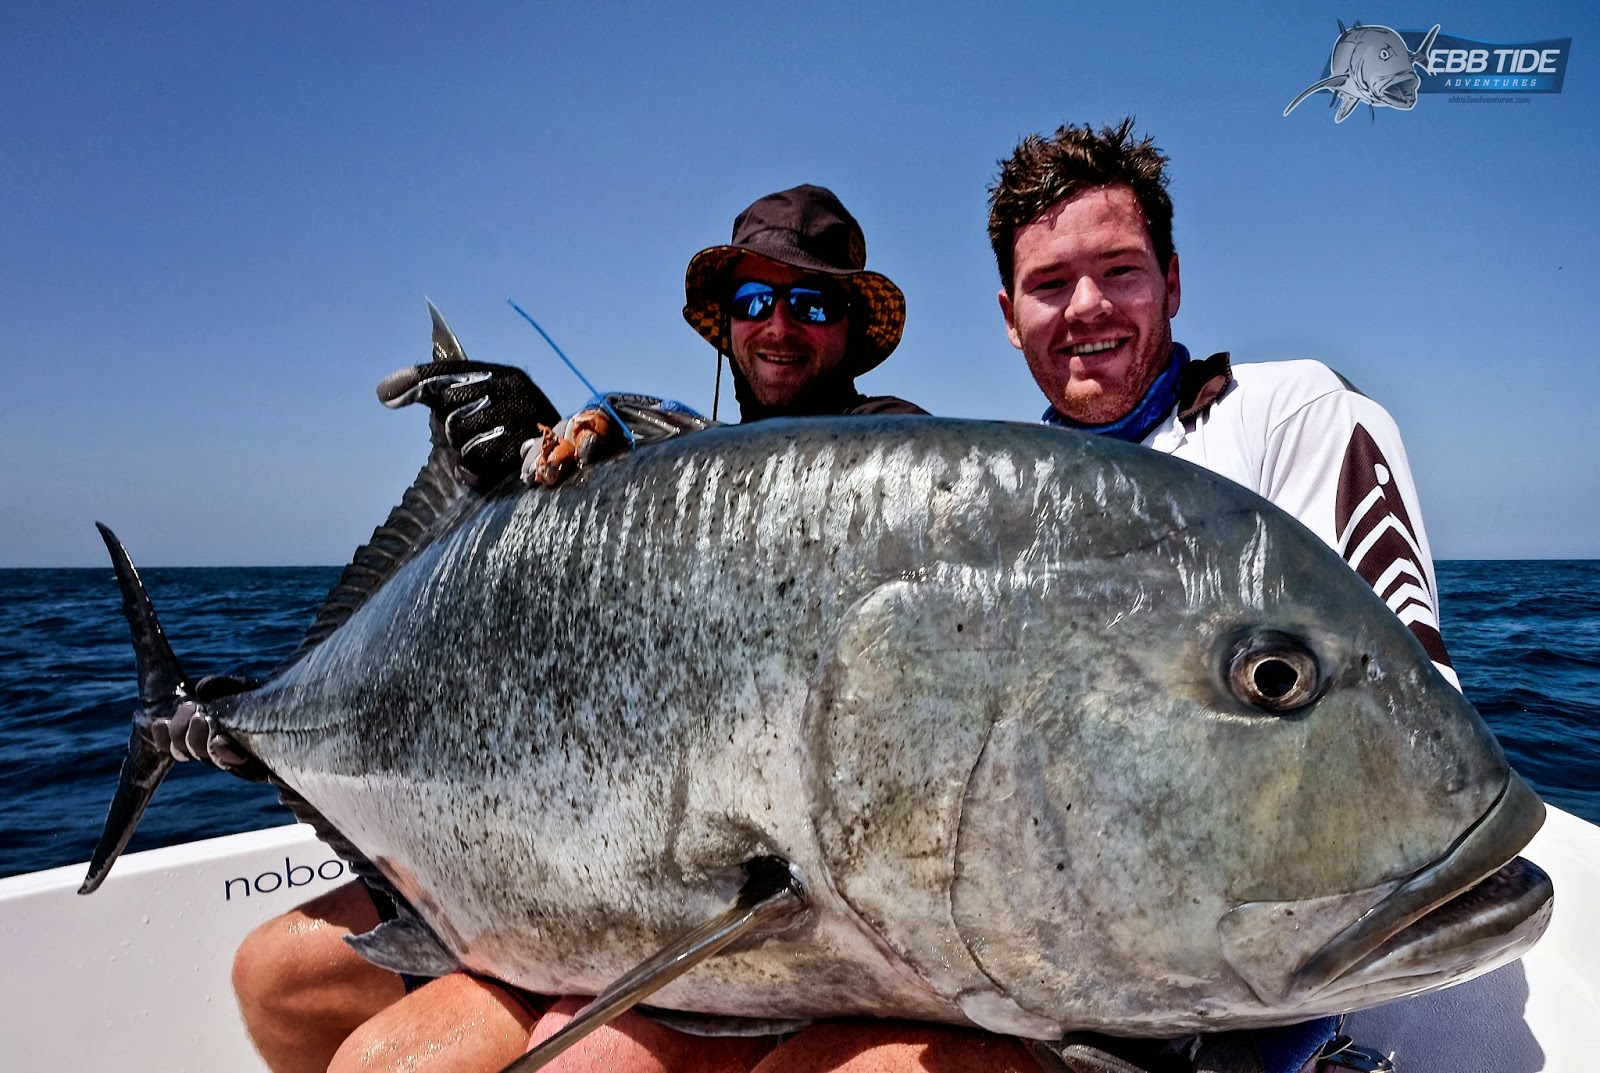 Ebb tide tackle the blog catch and release a guide to for Big 5 fishing